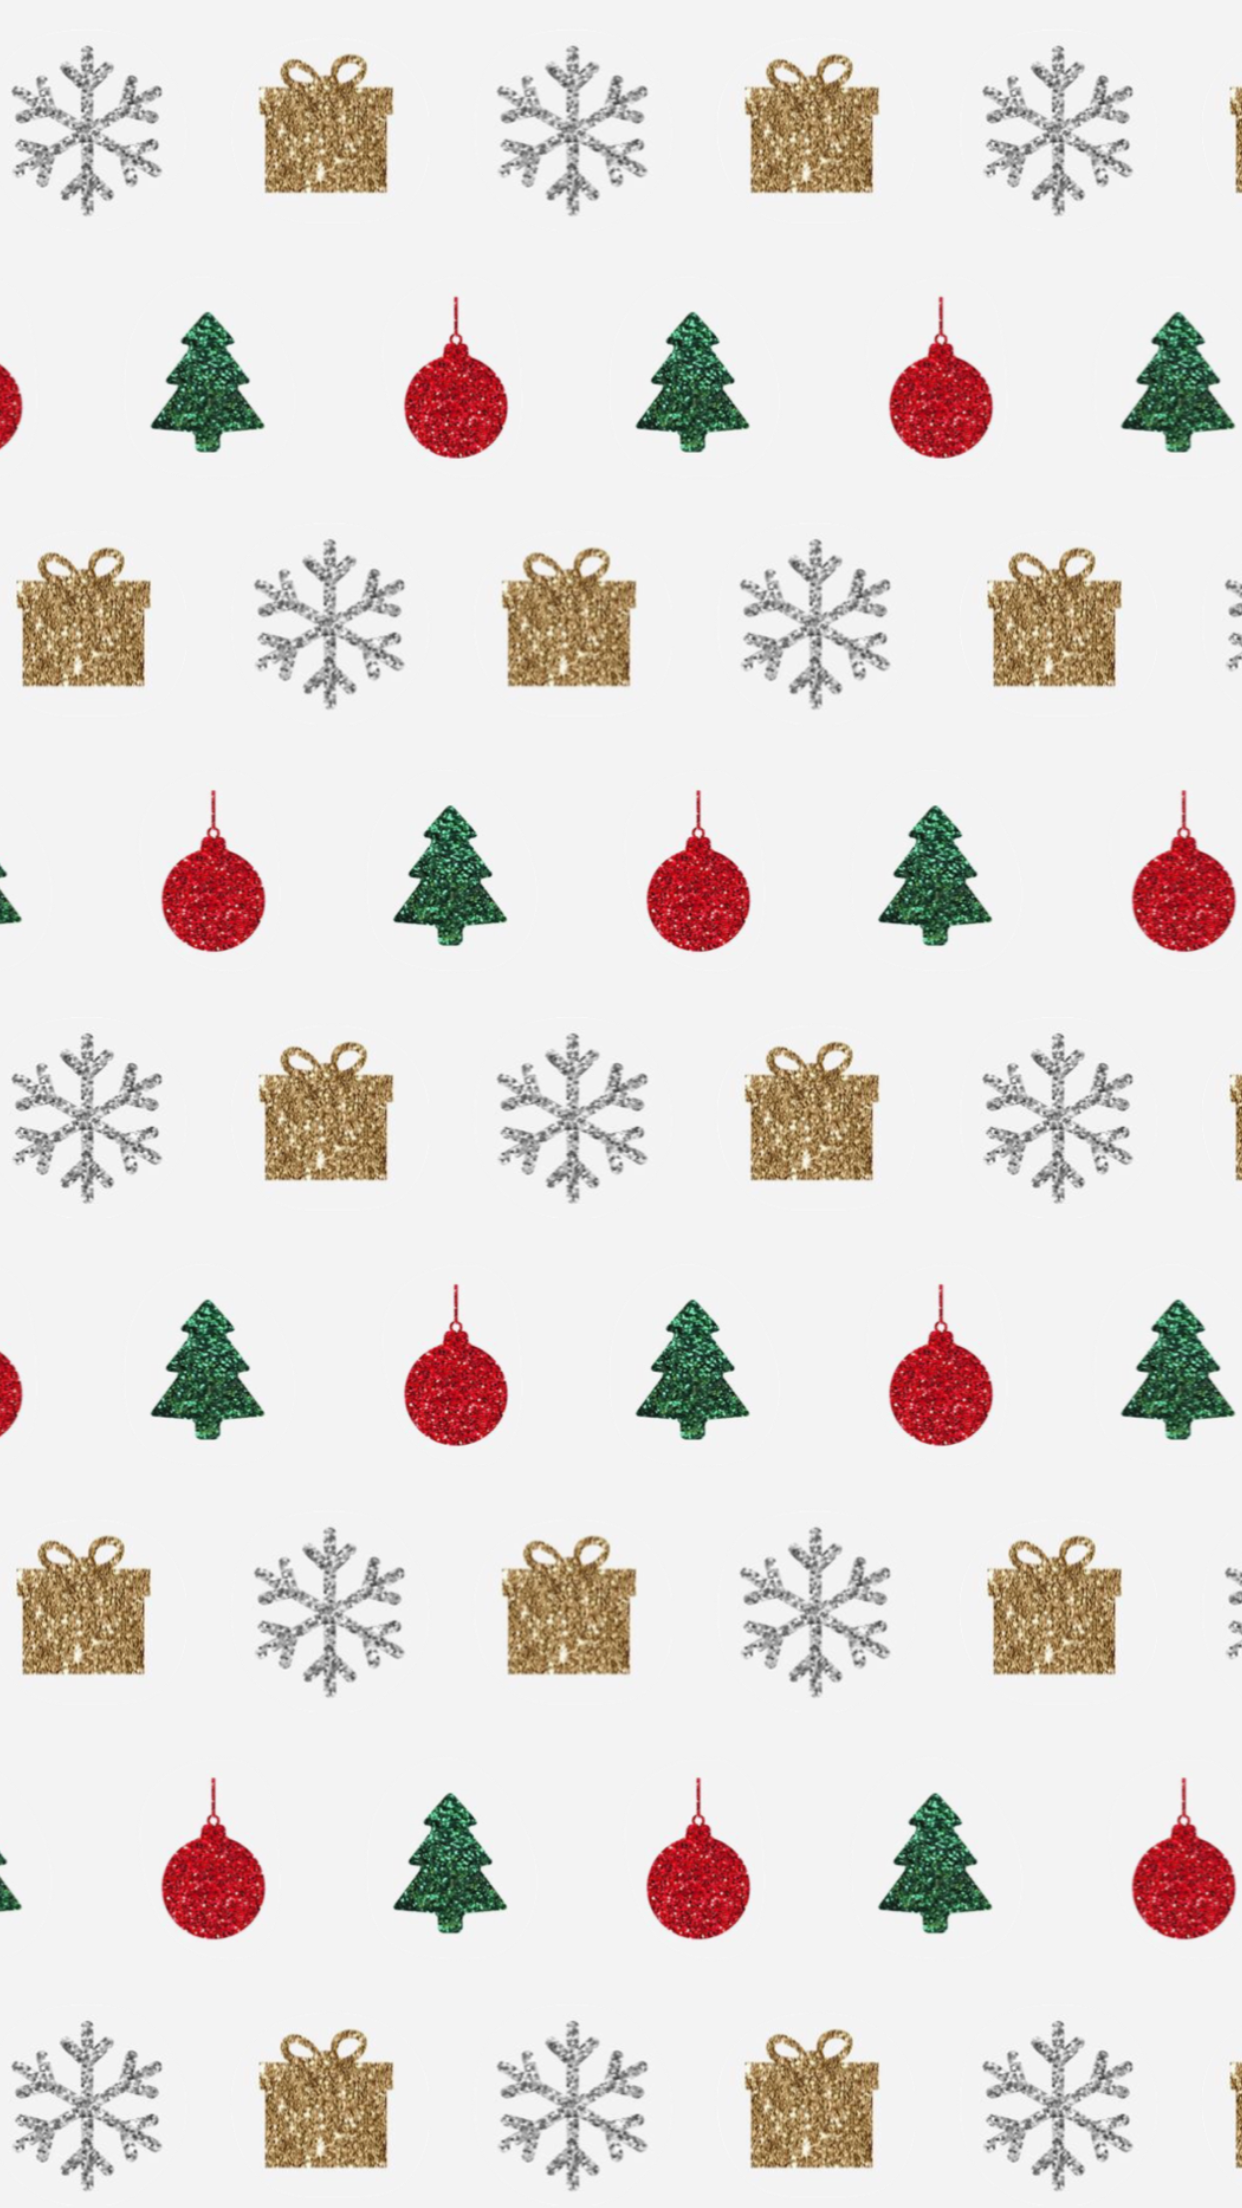 Pin By Stamcgrady On New Year Christmas Holidays Wallpapers Wallpaper Iphone Christmas Xmas Wallpaper Cute Christmas Wallpaper